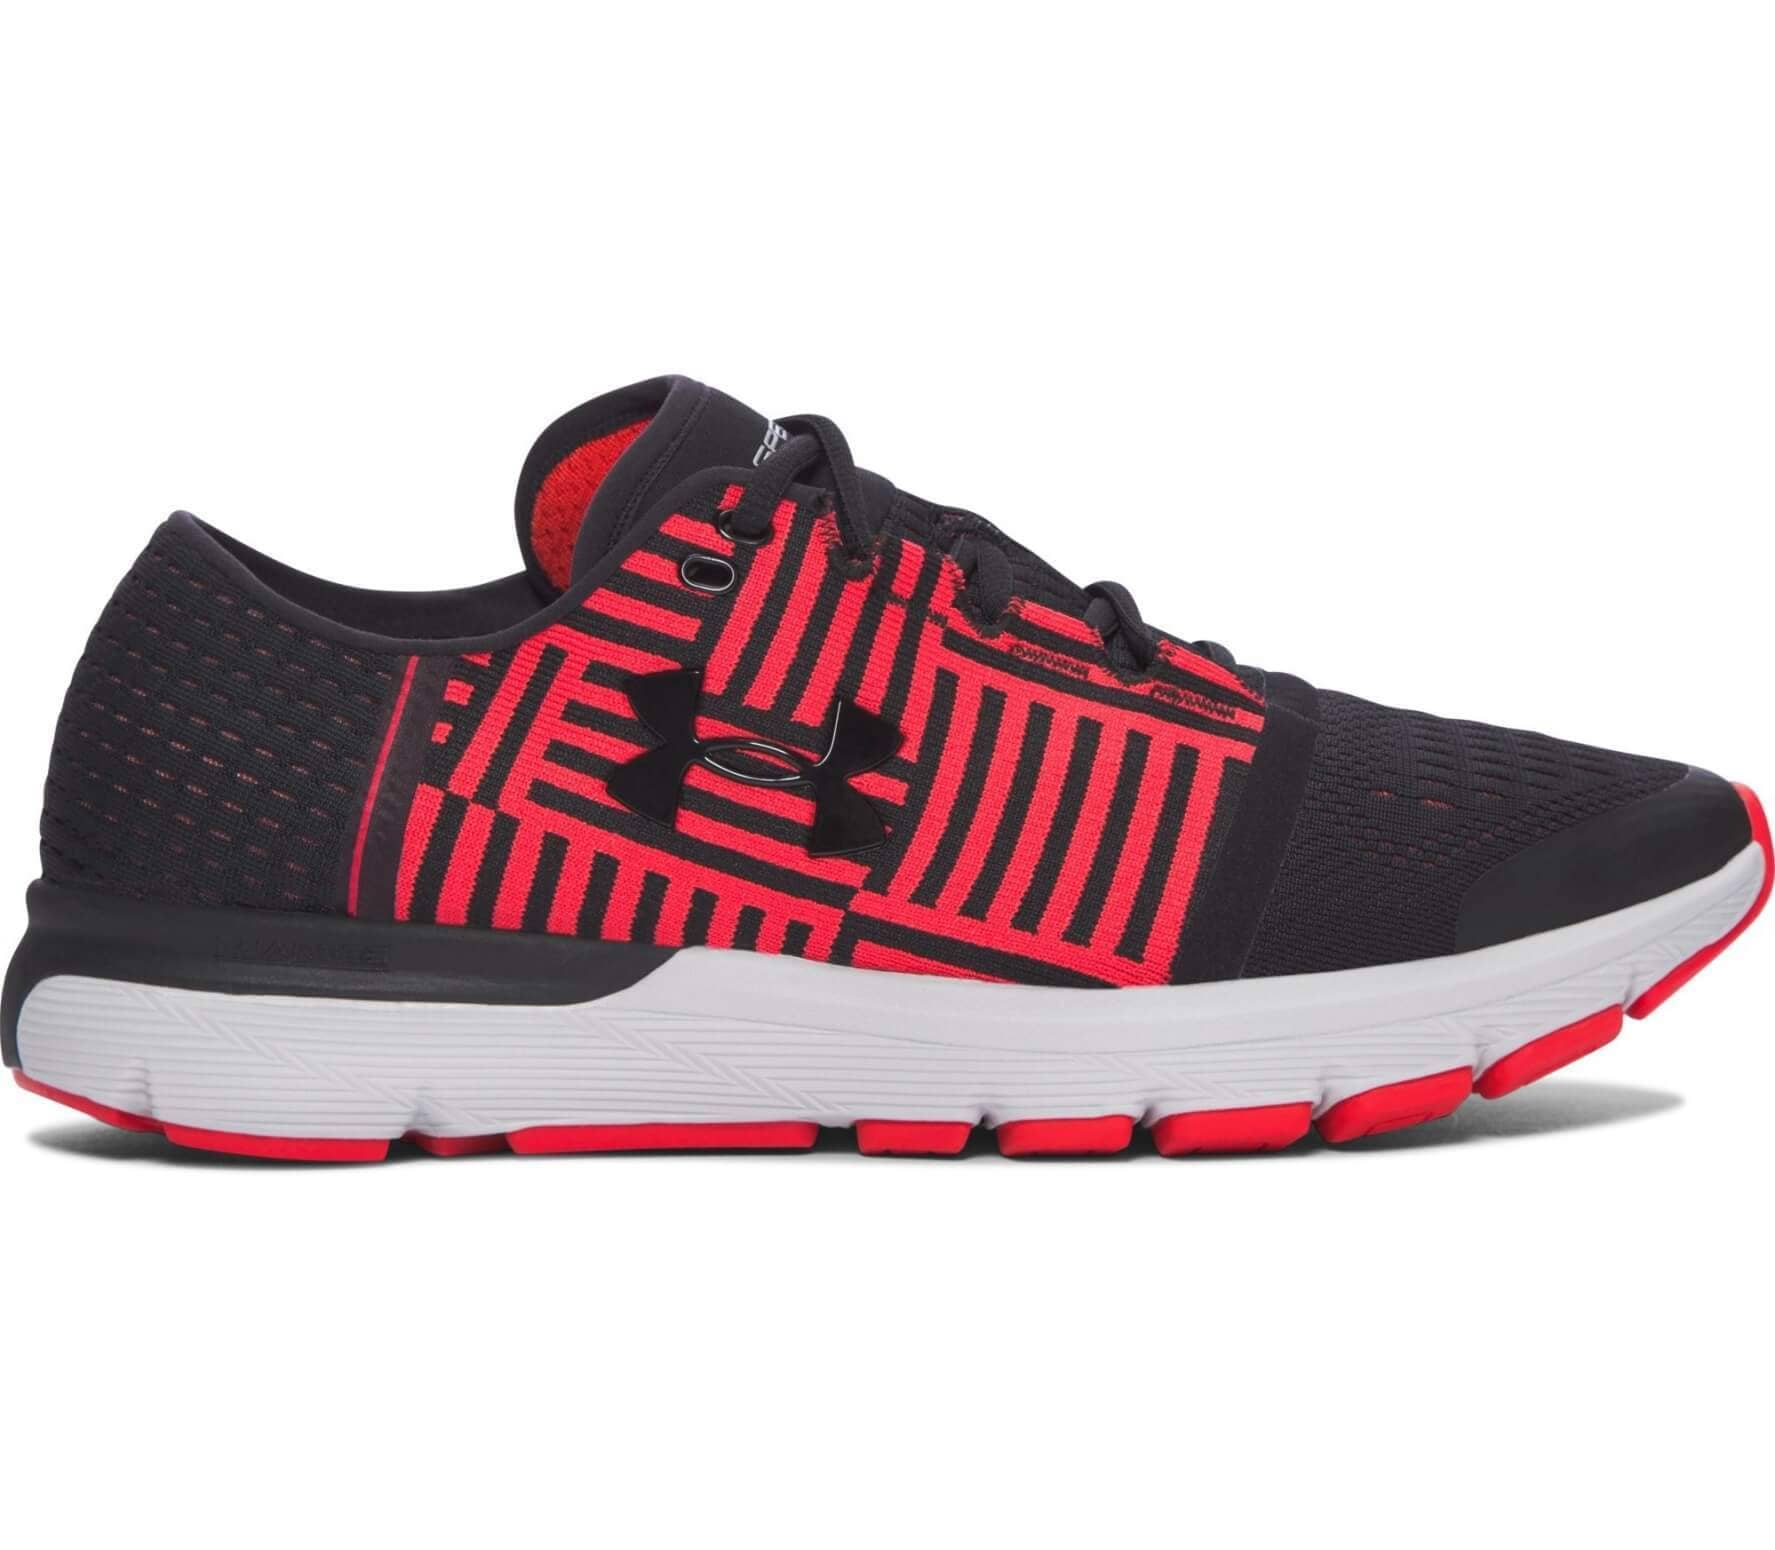 in stock 7b49c 46eb5 Under Armour Speedform Gemini 3 Men black